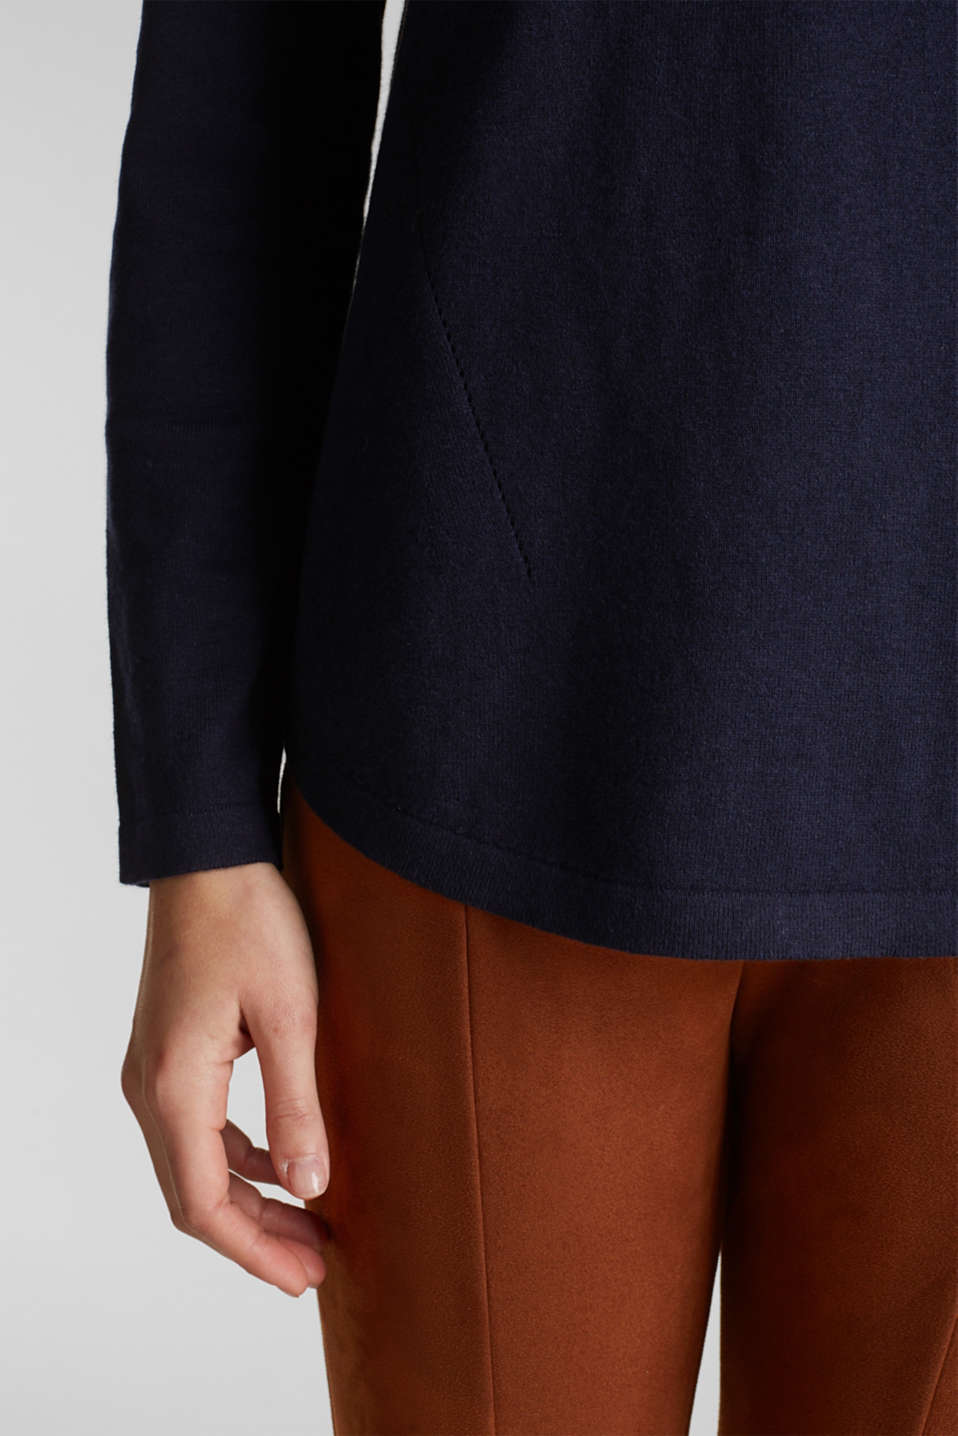 With linen: Jumper with open-work patterned details, NAVY, detail image number 4